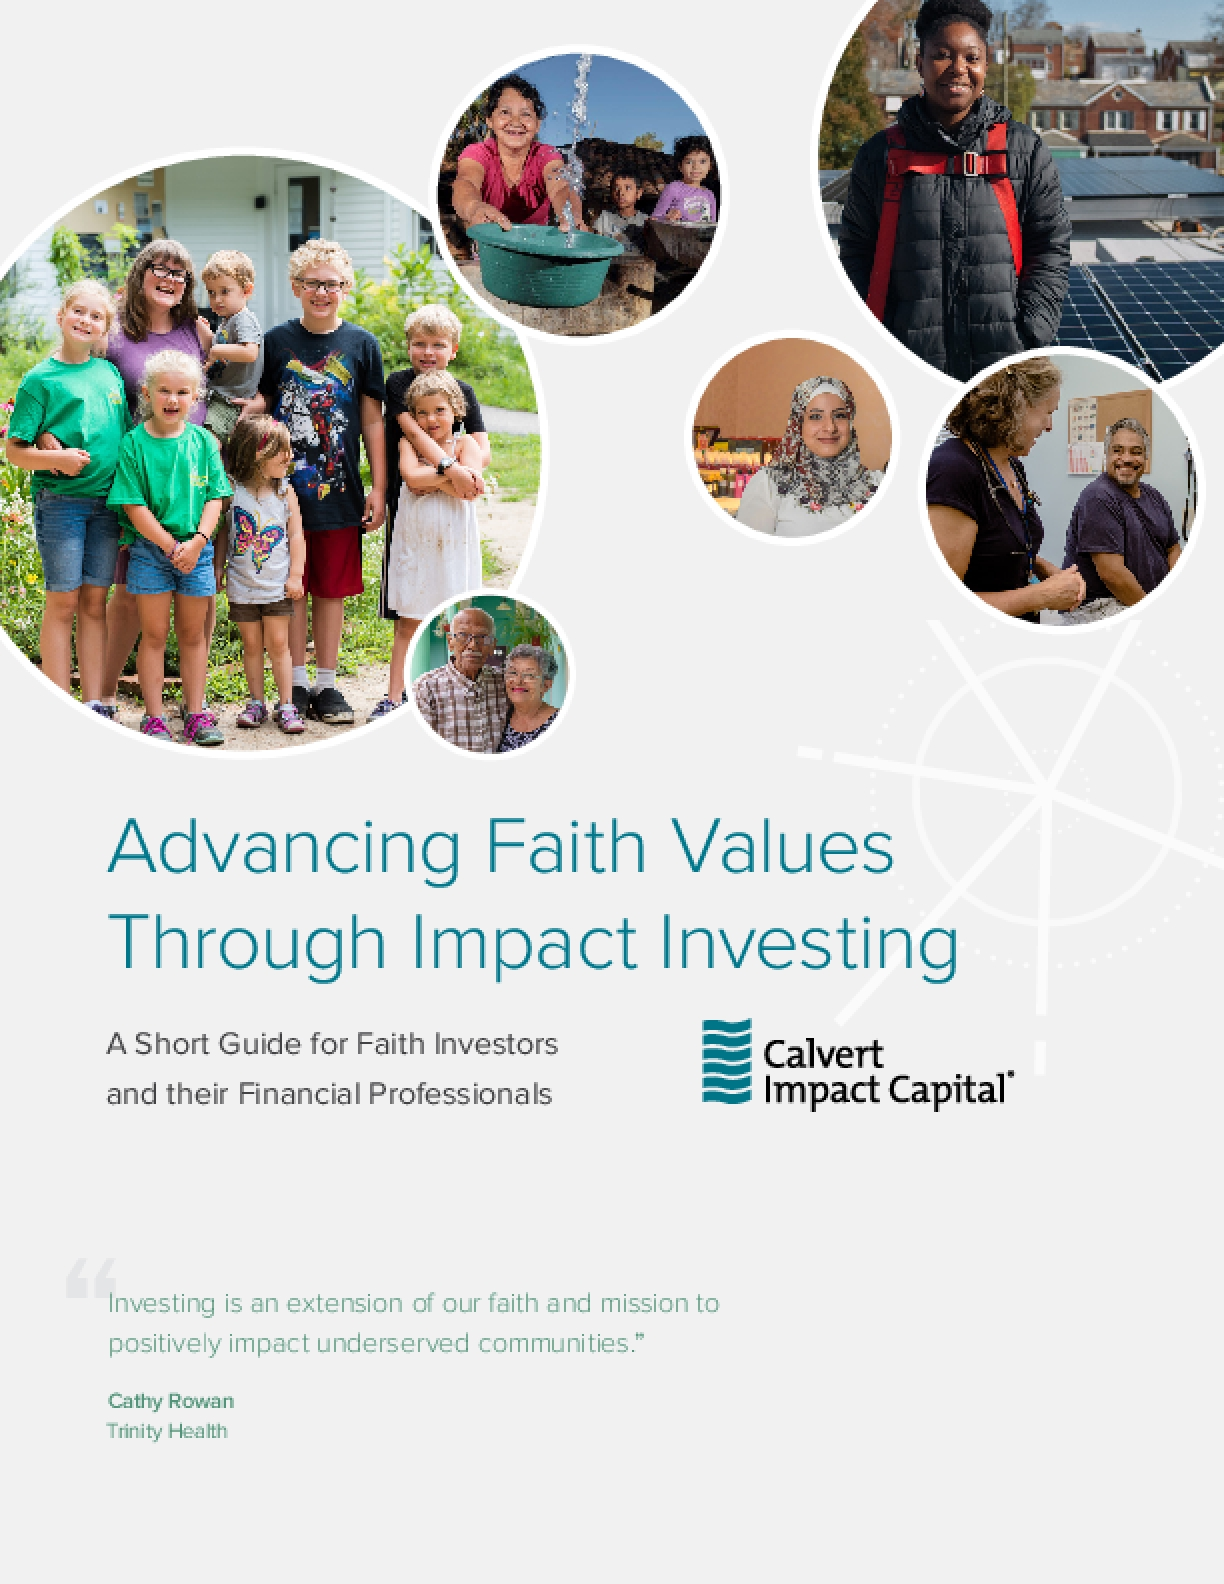 Advancing Faith Values Through Impact Investing: A Short Guide for Faith Investors and their Financial Professionals